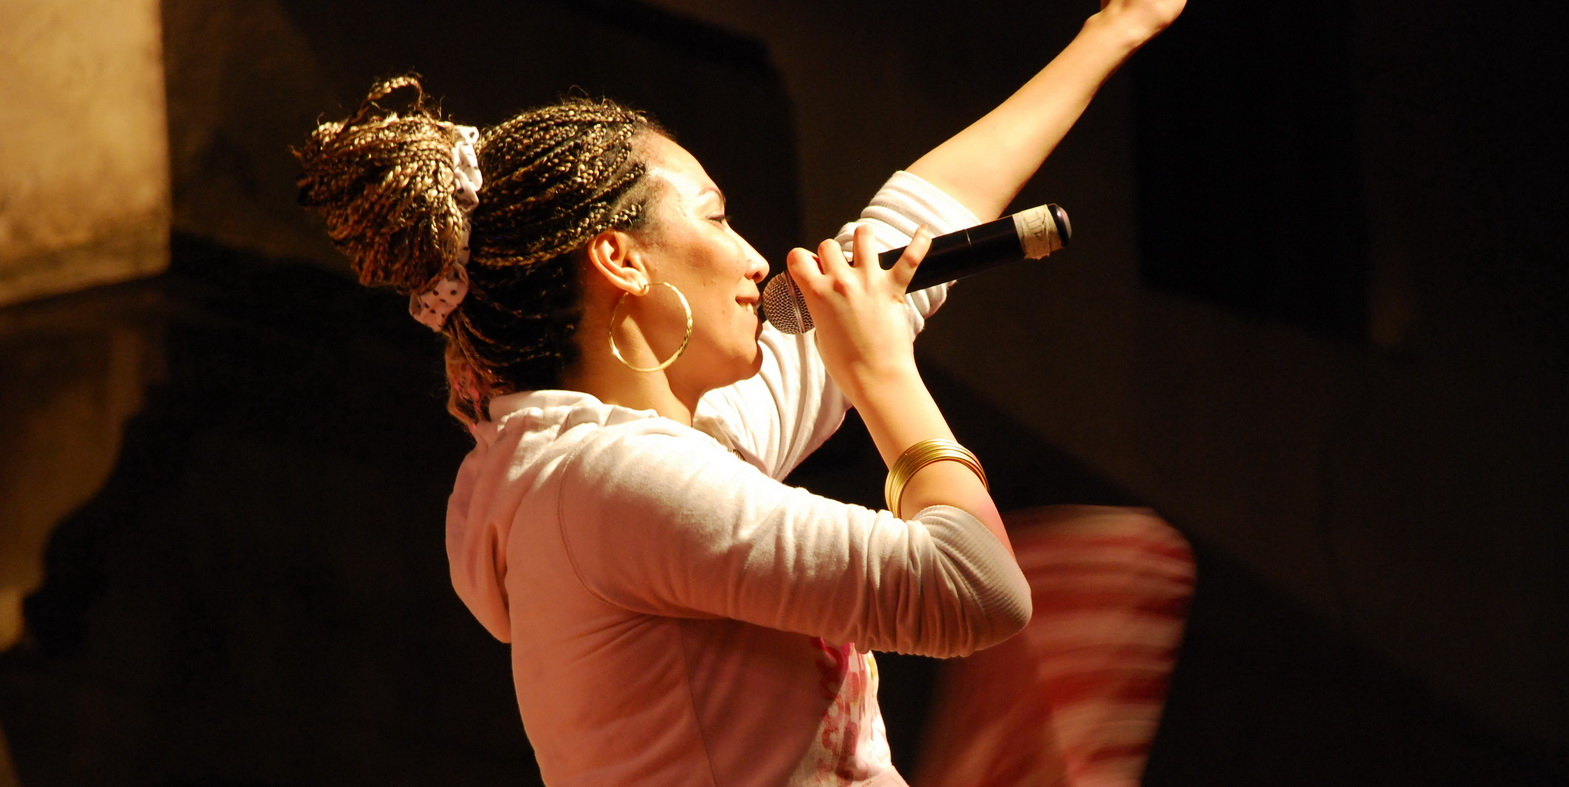 Soultana and her band won Morocco's biggest amateur music competition a few years back and promptly became the most recognized female rap group in Africa.